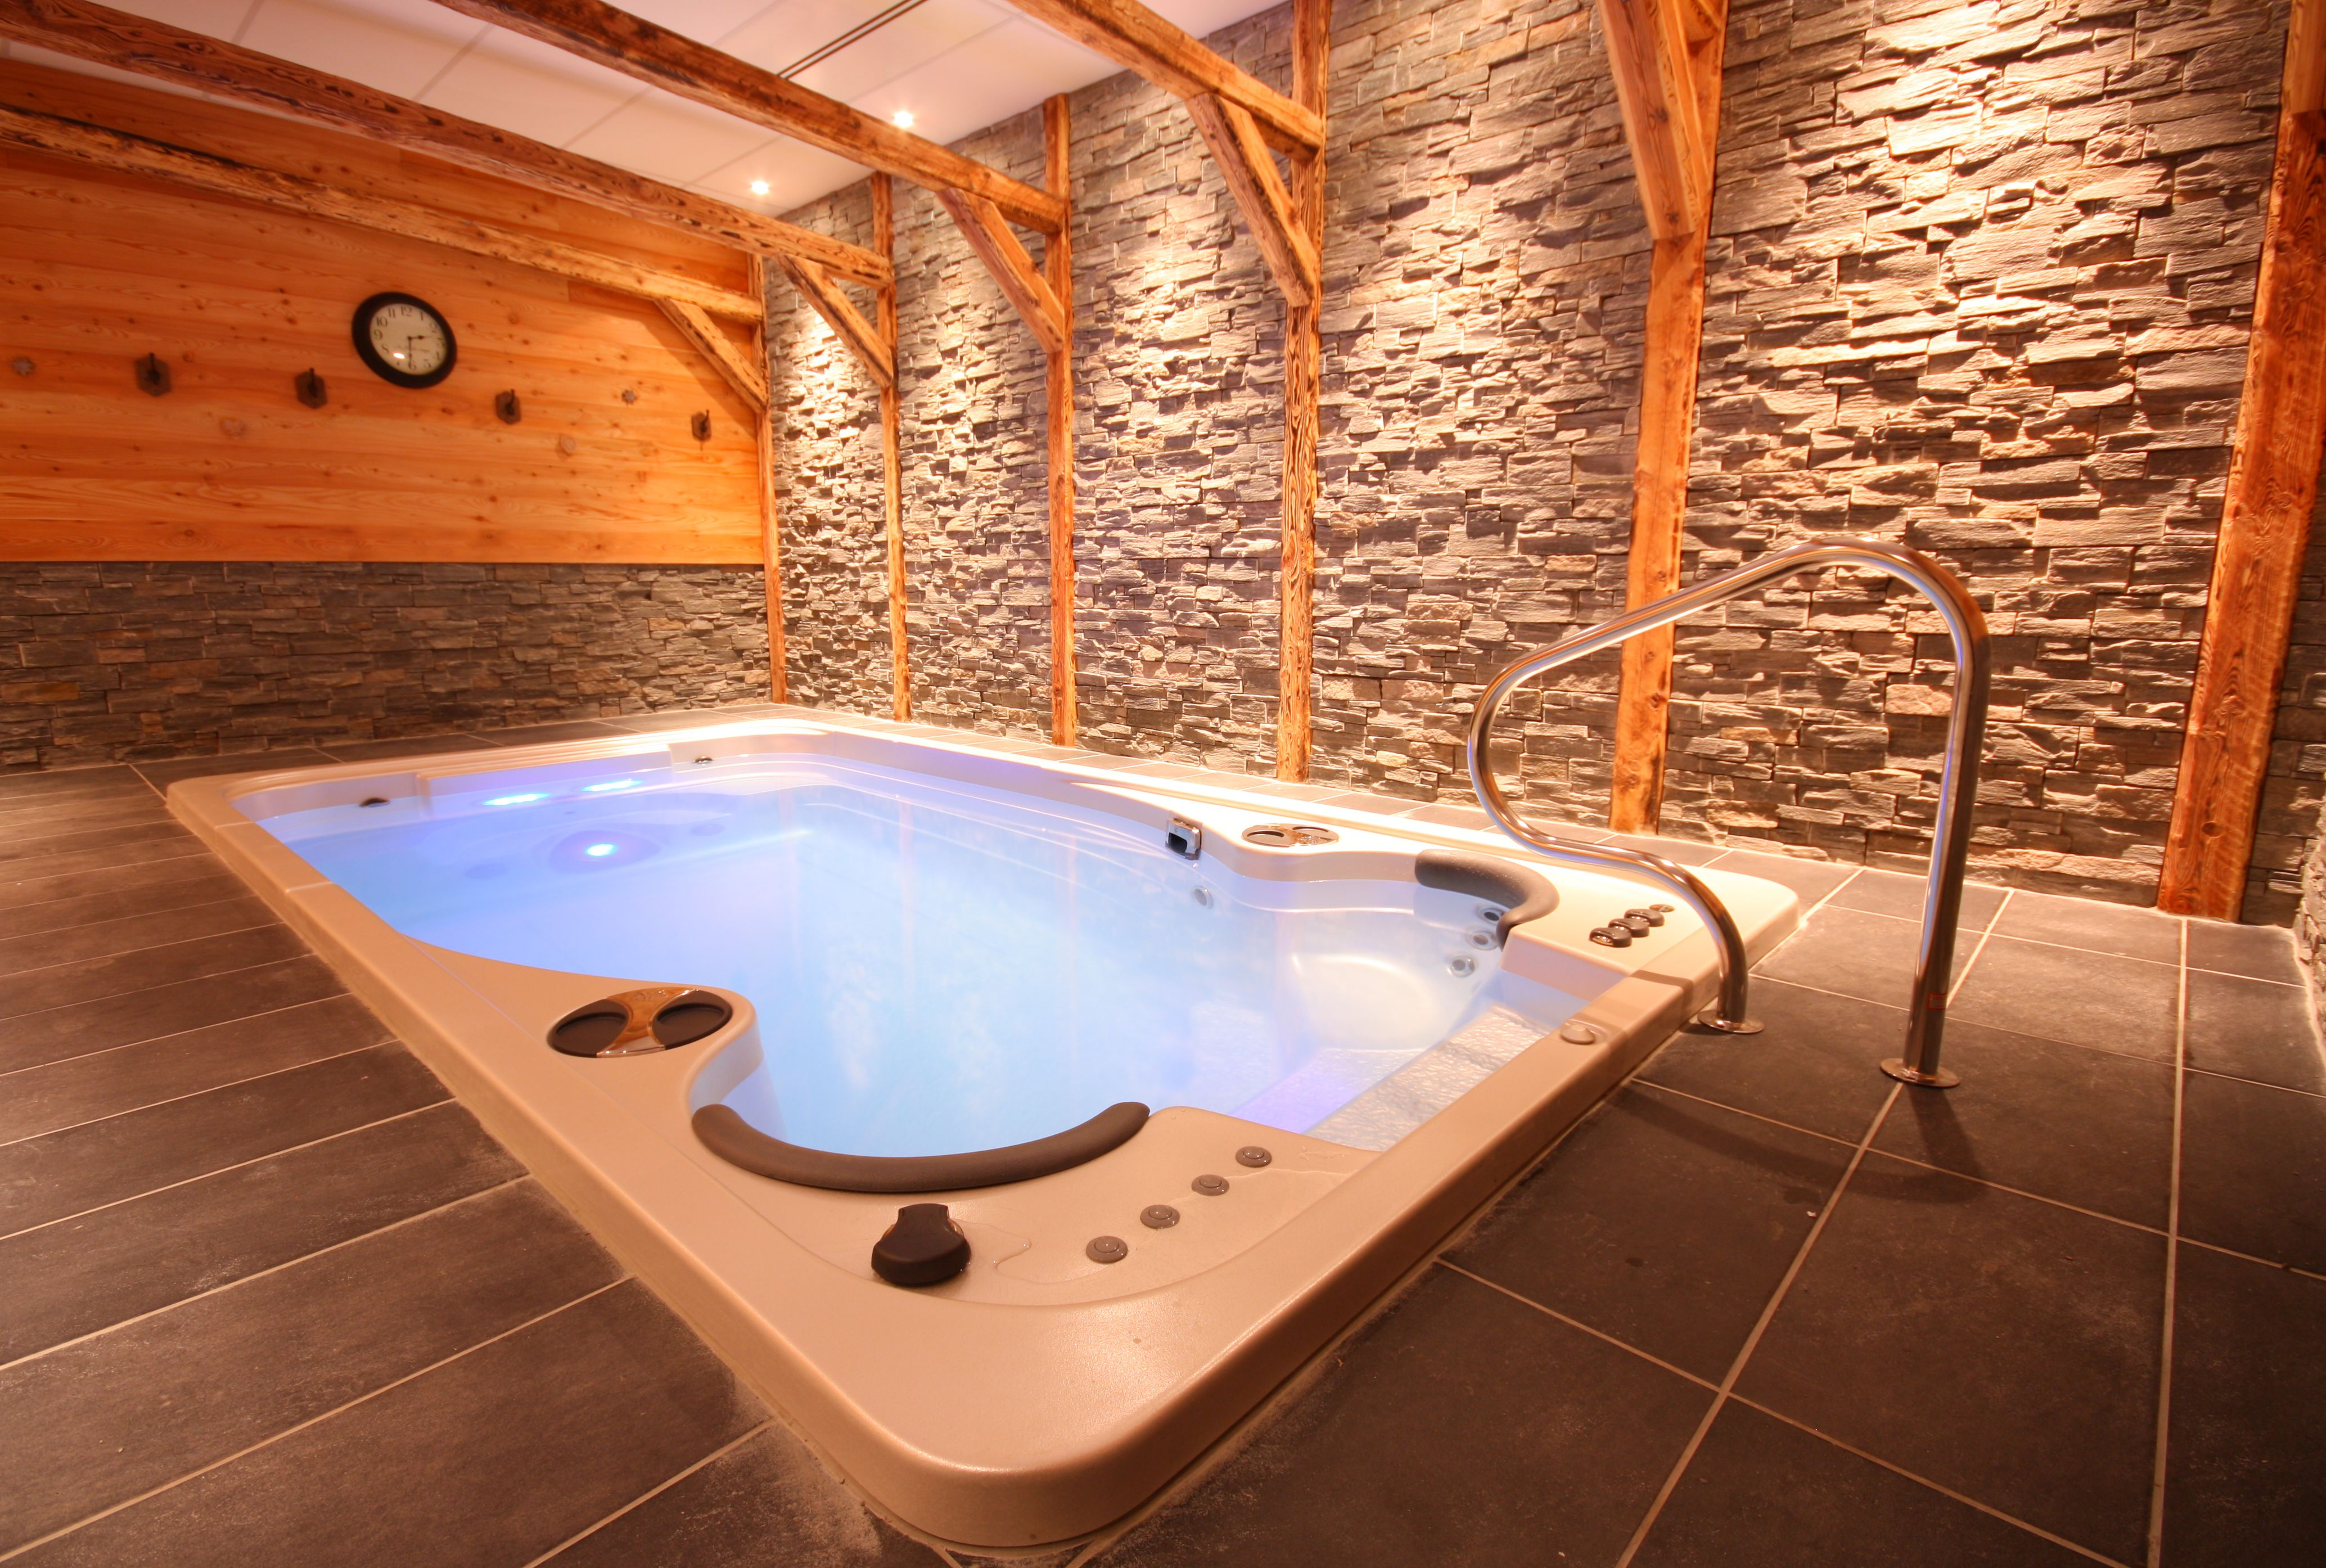 Hydropool self cleaning swim spa installed indoors for Pool builder quotes